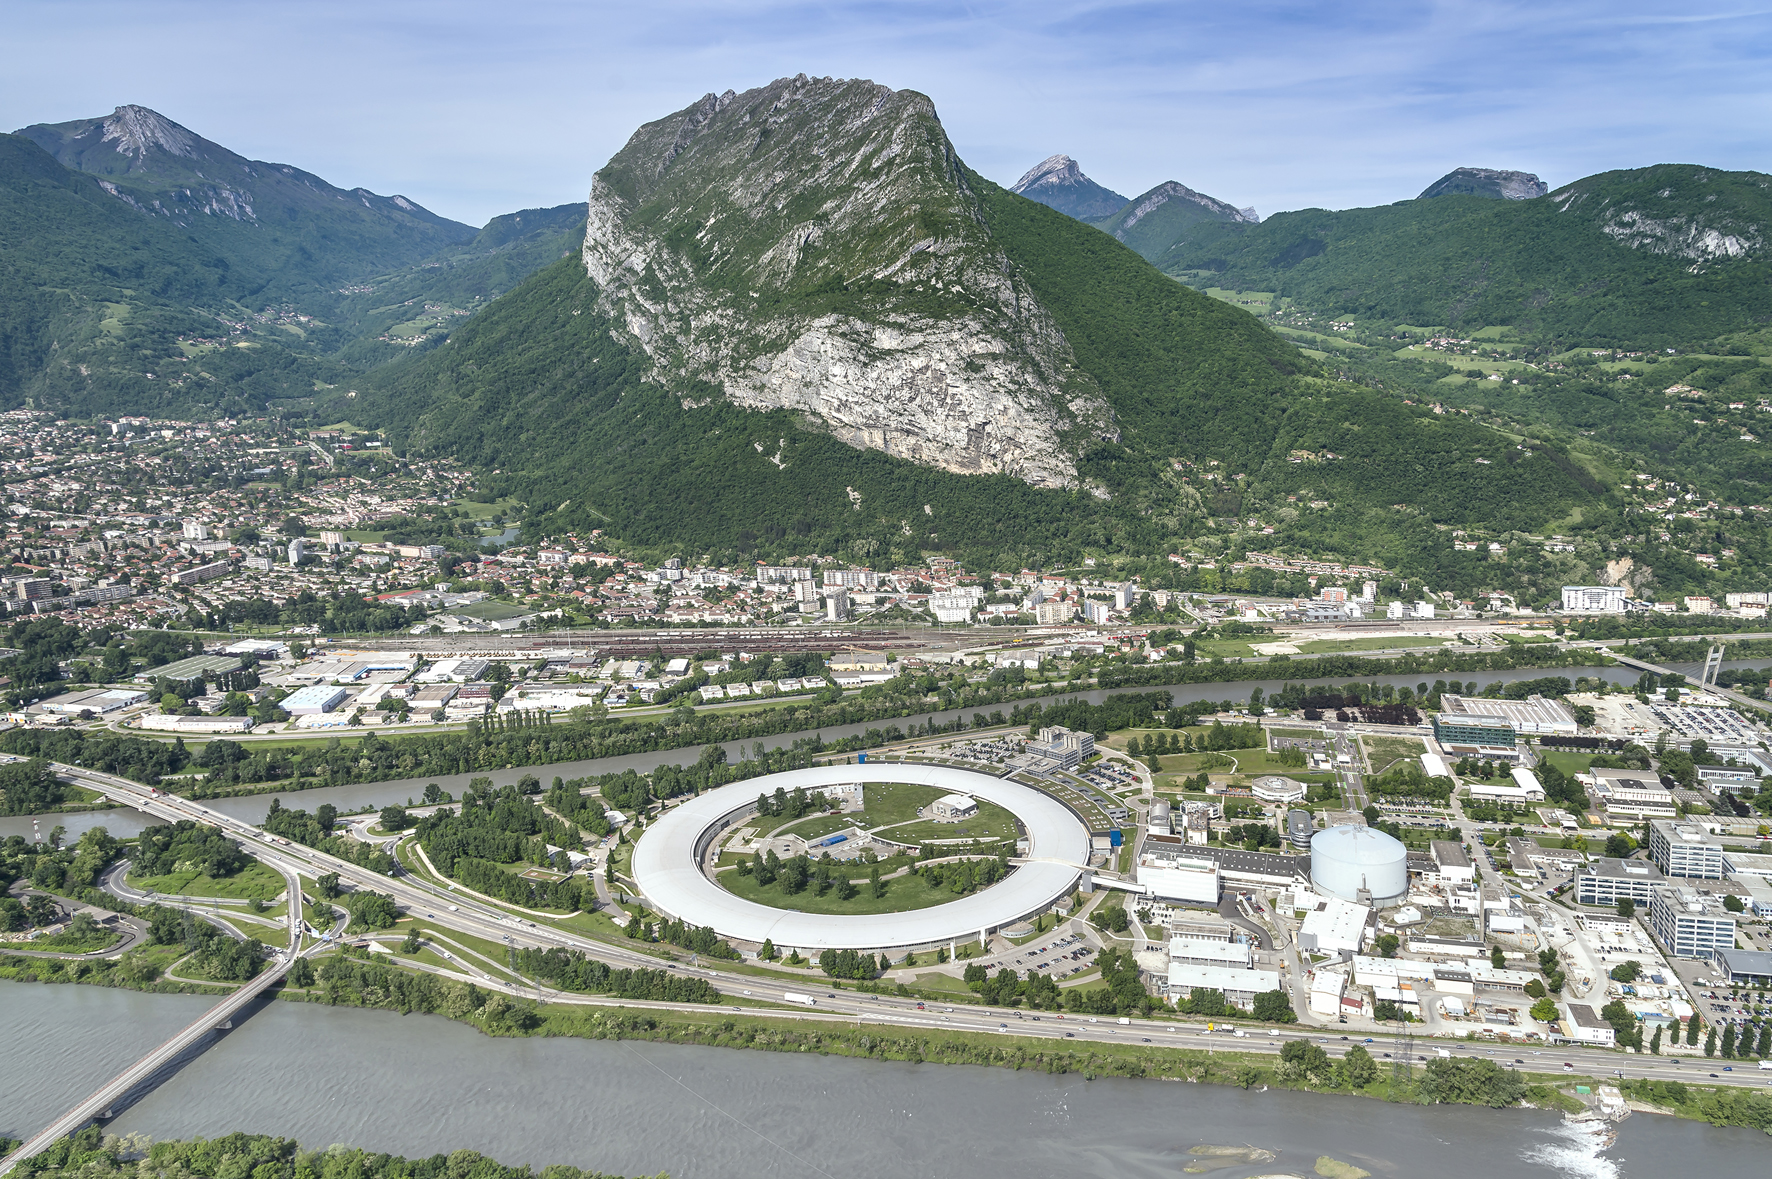 ESRF AERIAL VIEWS_MOREL_MAY 2015_LR_05.jpg (ESRF - THE EUROPEAN SYNCHROTRON...